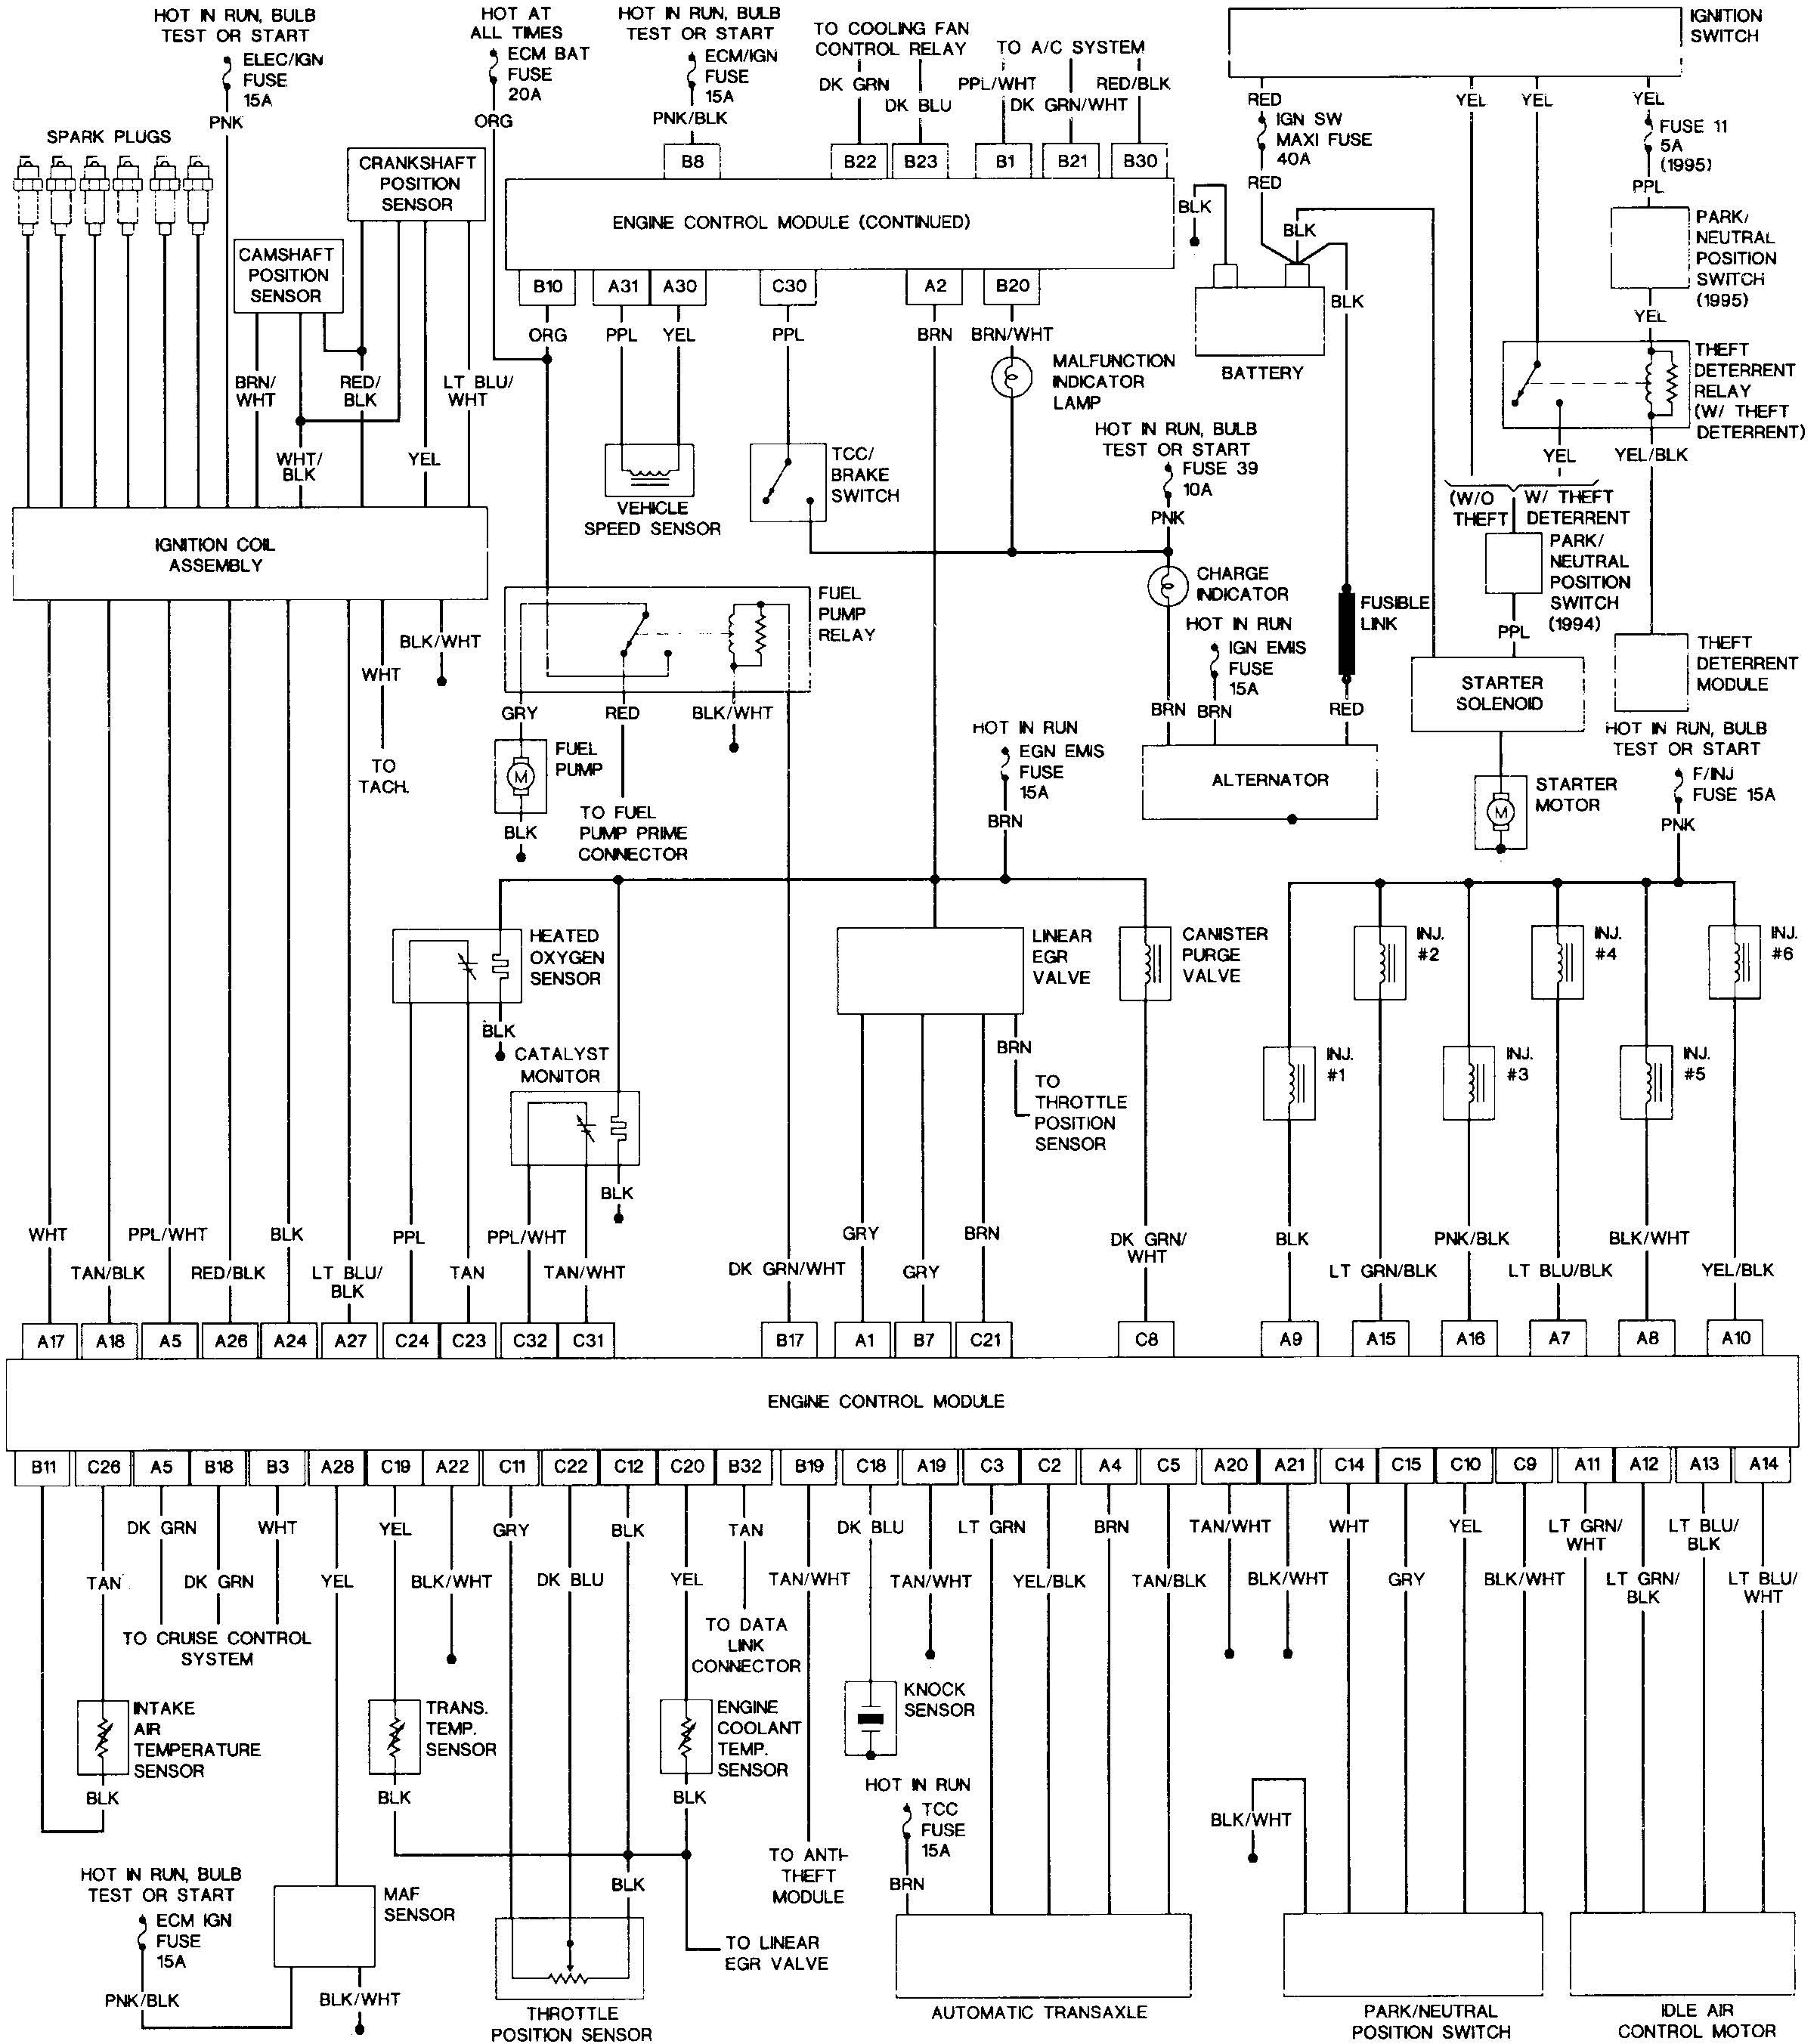 1995 nissan stereo wiring diagram xx 8285  1997 olds achieva relay location get free image about  1997 olds achieva relay location get